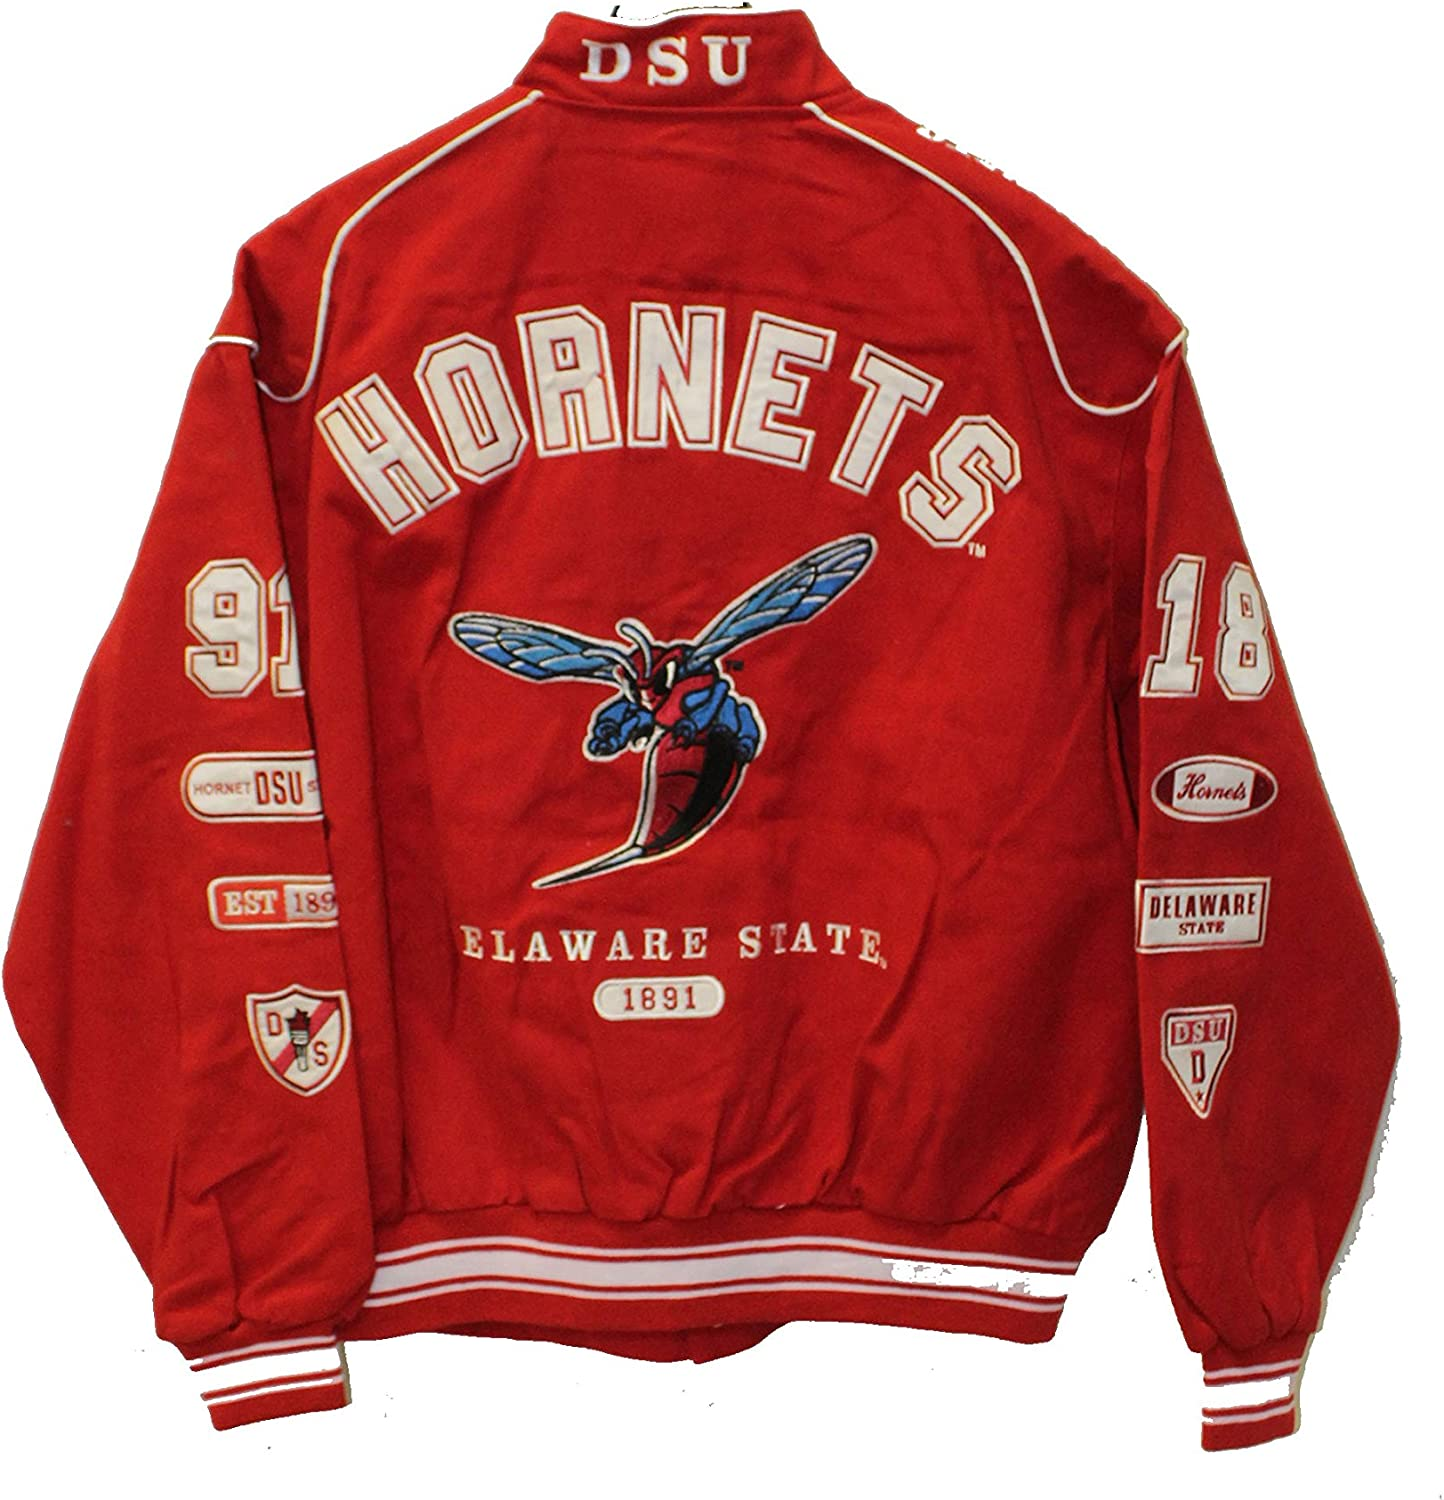 Delaware State Hornets Crest and EST Date on Snap Racing Jacket